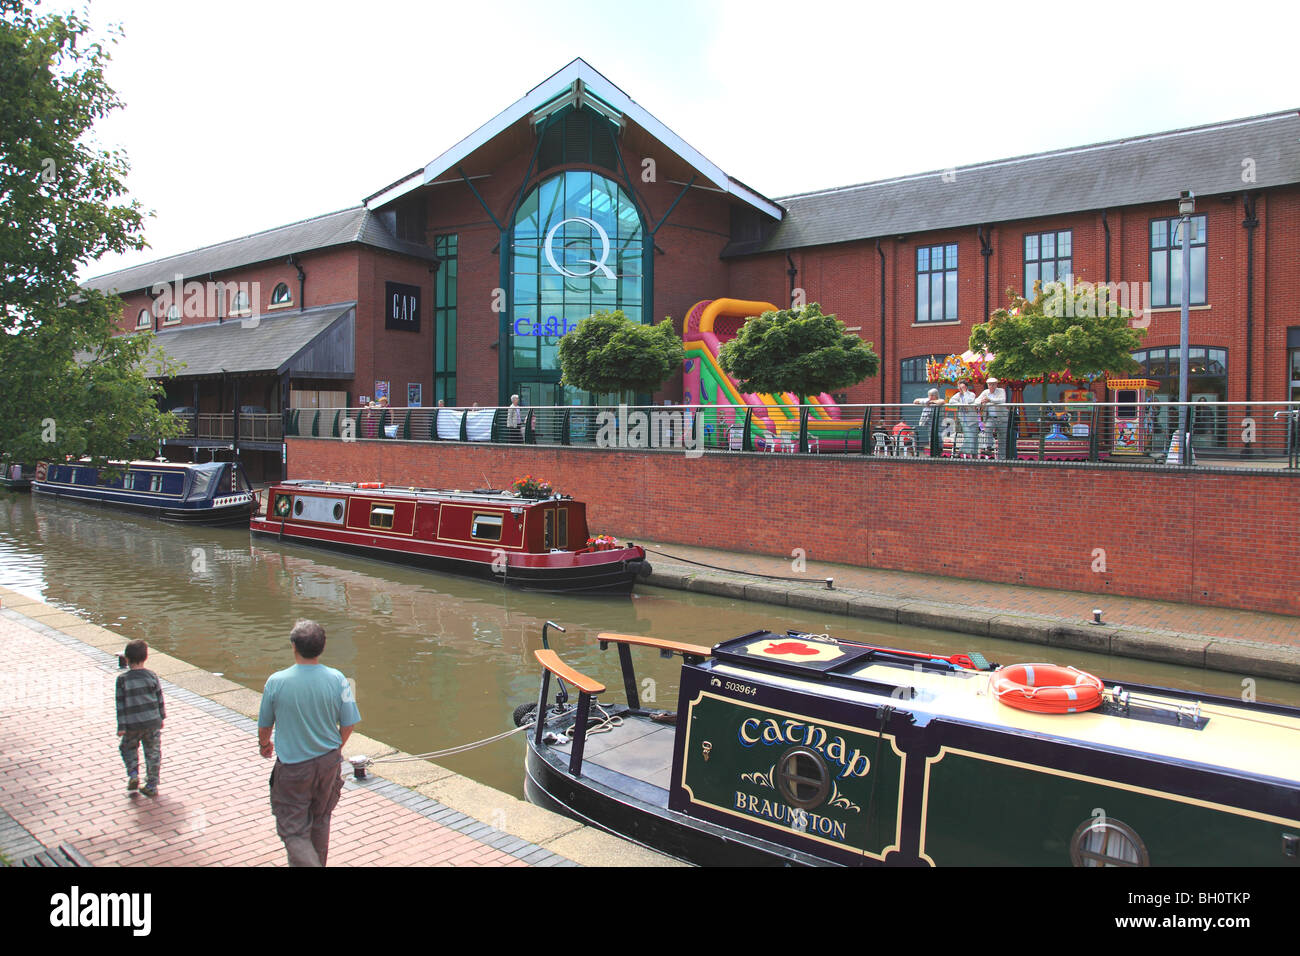 The Oxford Canal and the Castle Quay shopping centre in Banbury, Oxfordshire - Stock Image